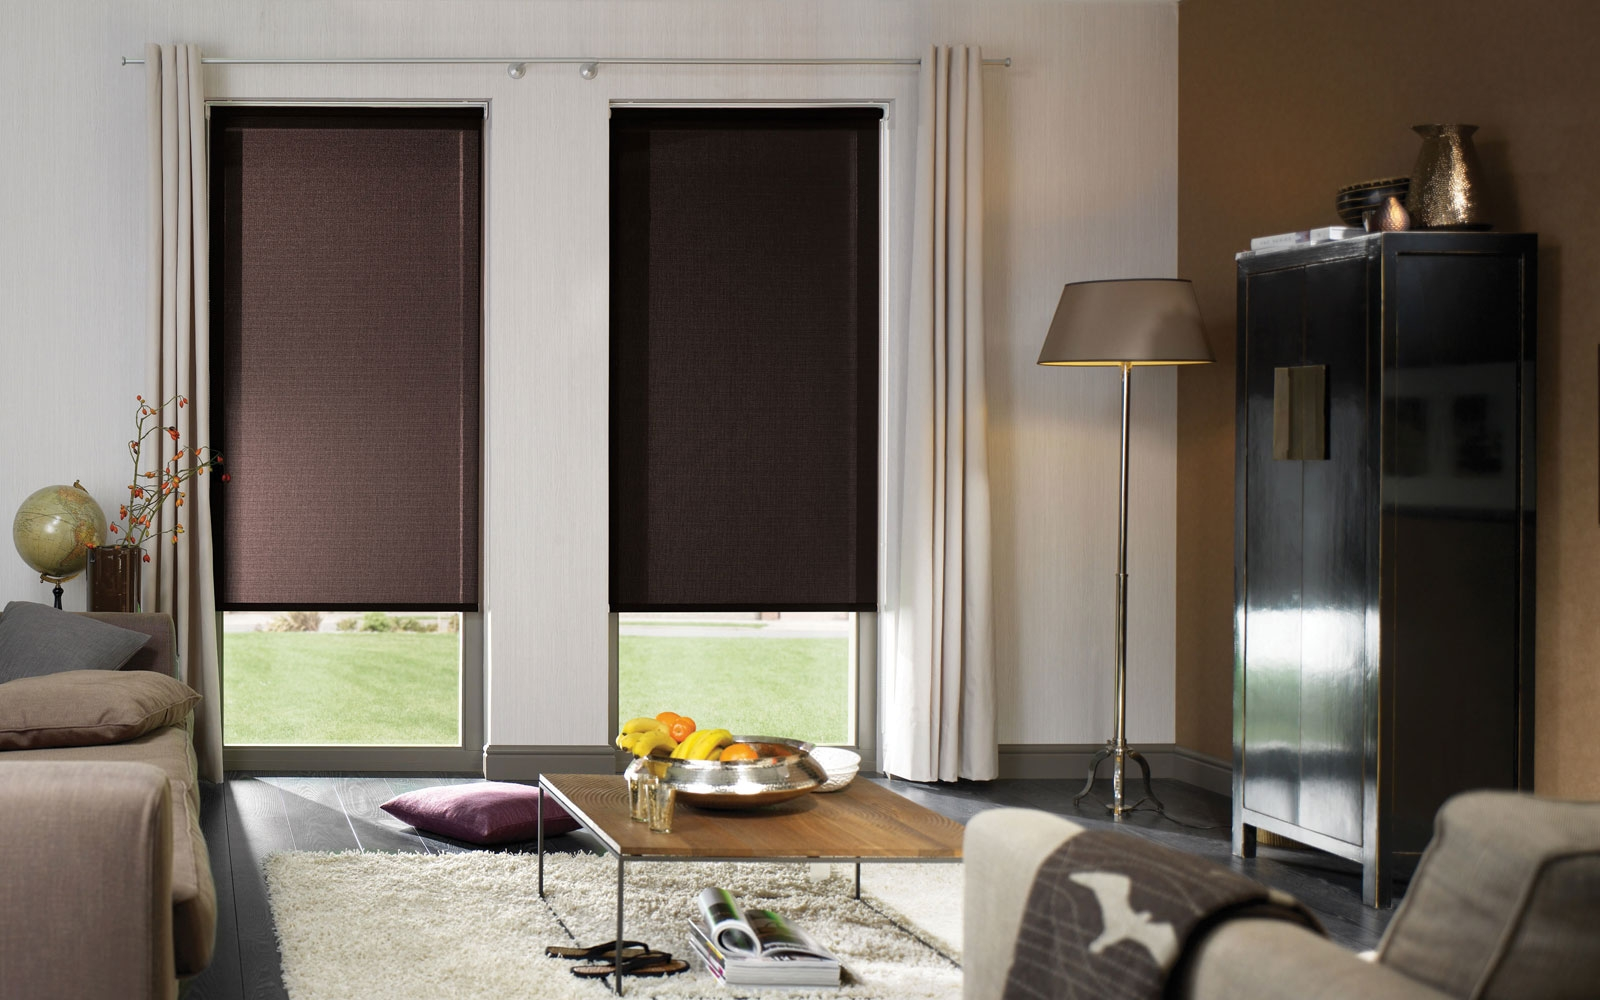 Make It Darker With Black Out Roman Blinds Decorifusta Pertaining To Blackout Roman Blind (Image 12 of 15)